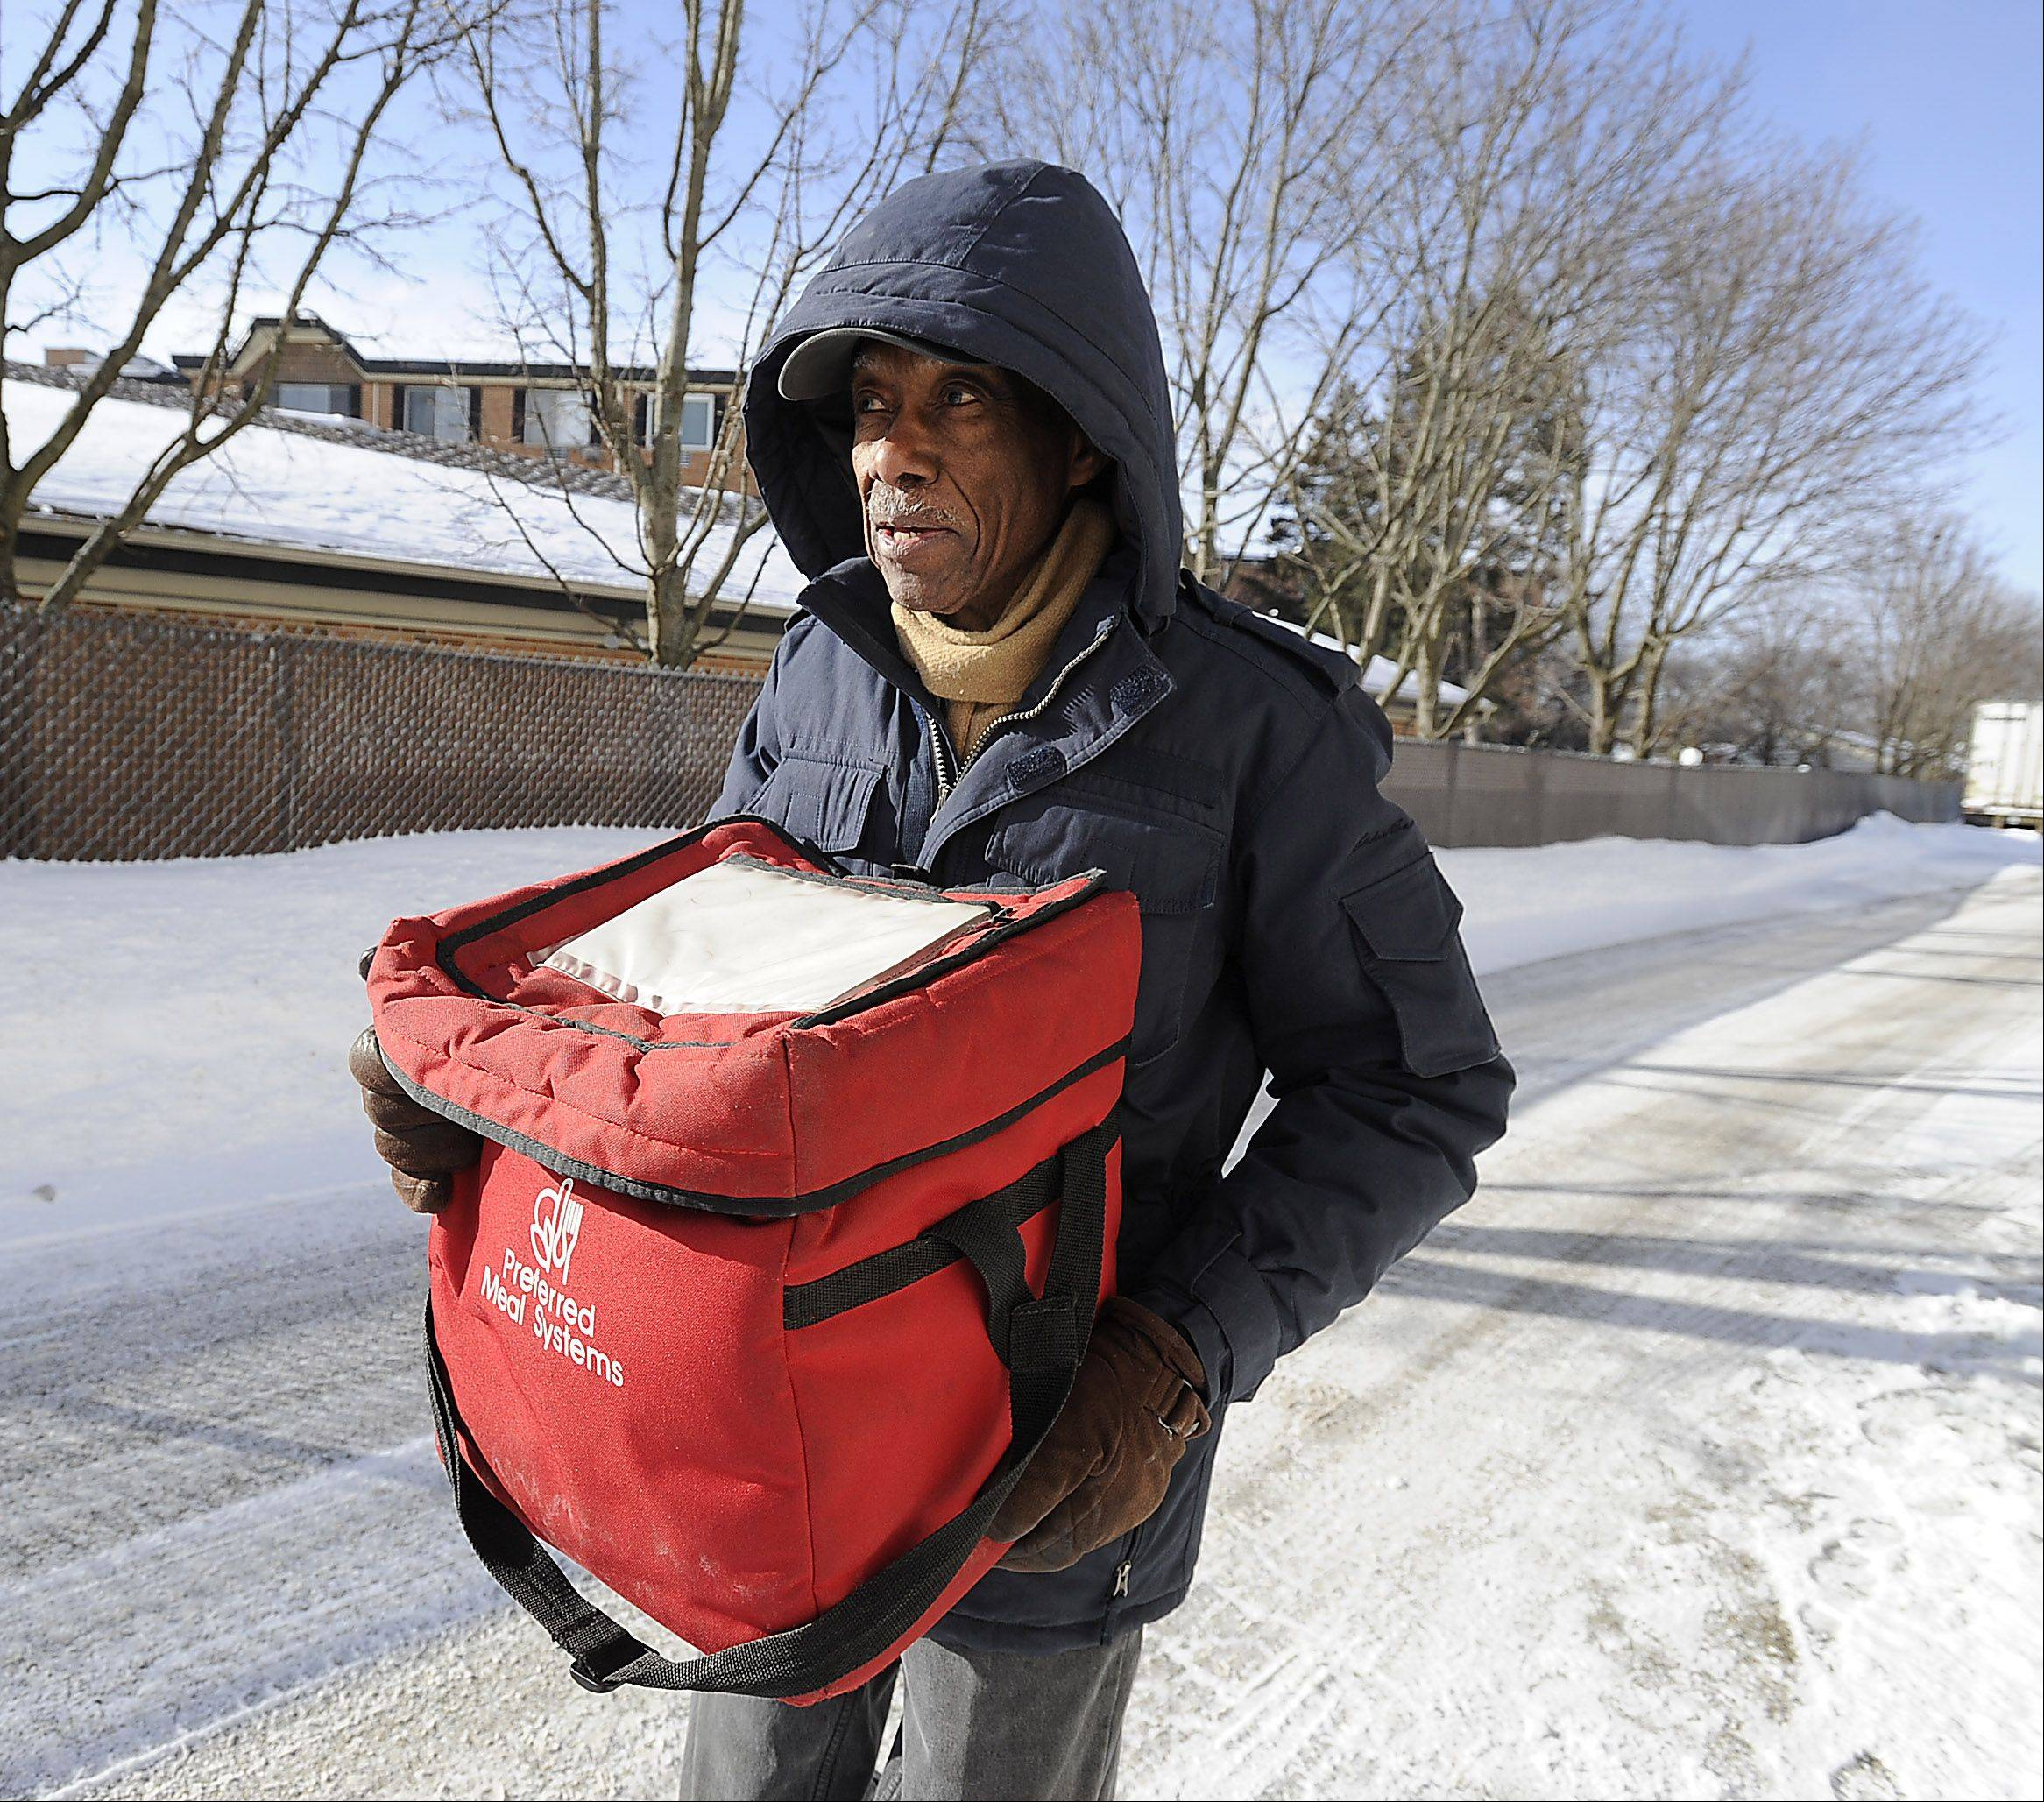 Meals on Wheels volunteer Samuel Grimes, 88, loads up his van Monday as he prepares to set out on his daily delivery run. The Des Plaines man brings meals to 34 clients five days a week.